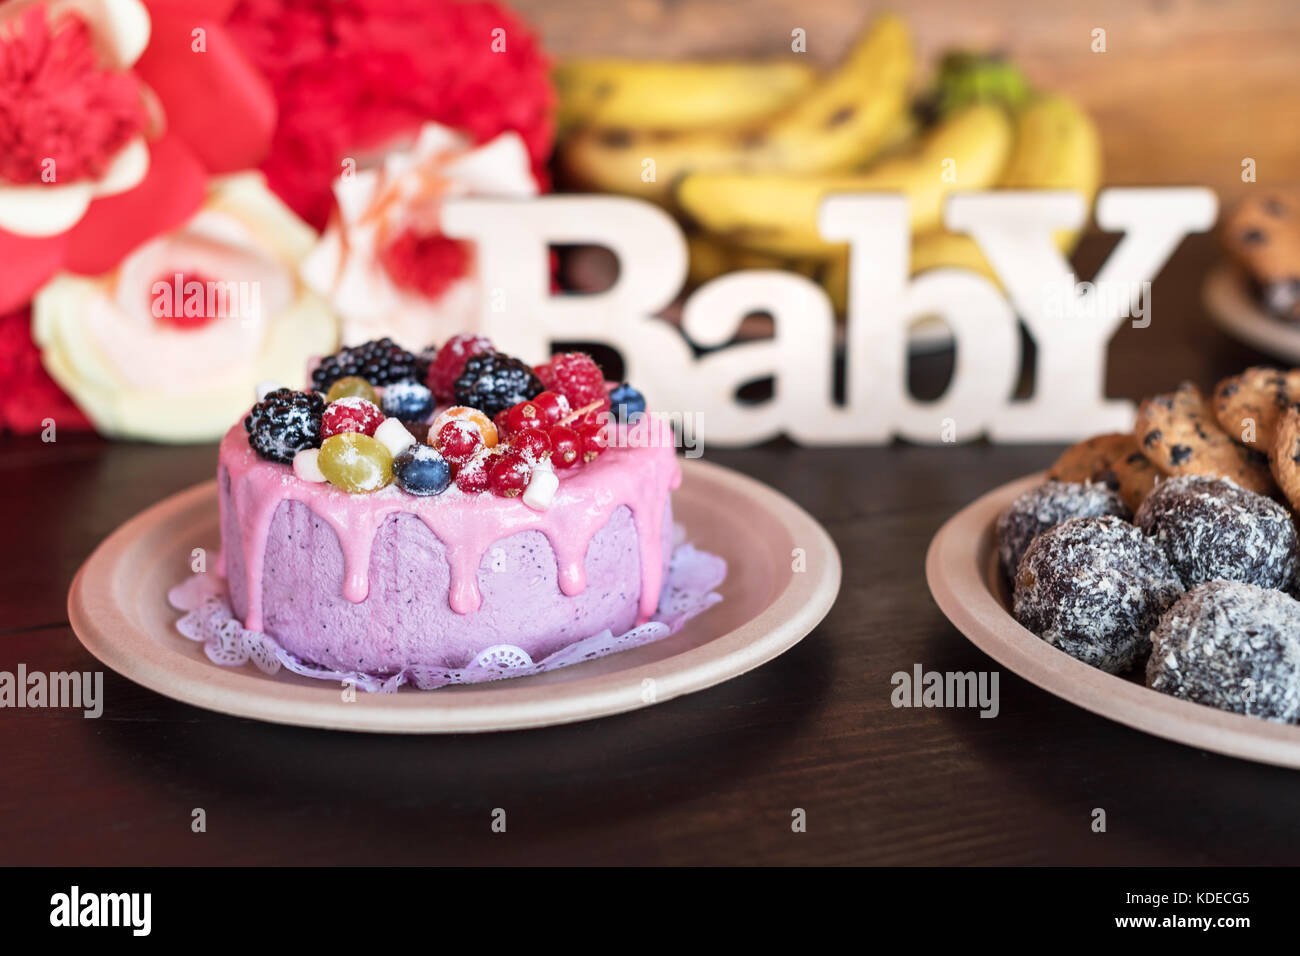 Birthday cake and muffins with wooden greeting sign on dark background. Wooden sing with letters Baby and holiday - Stock Image